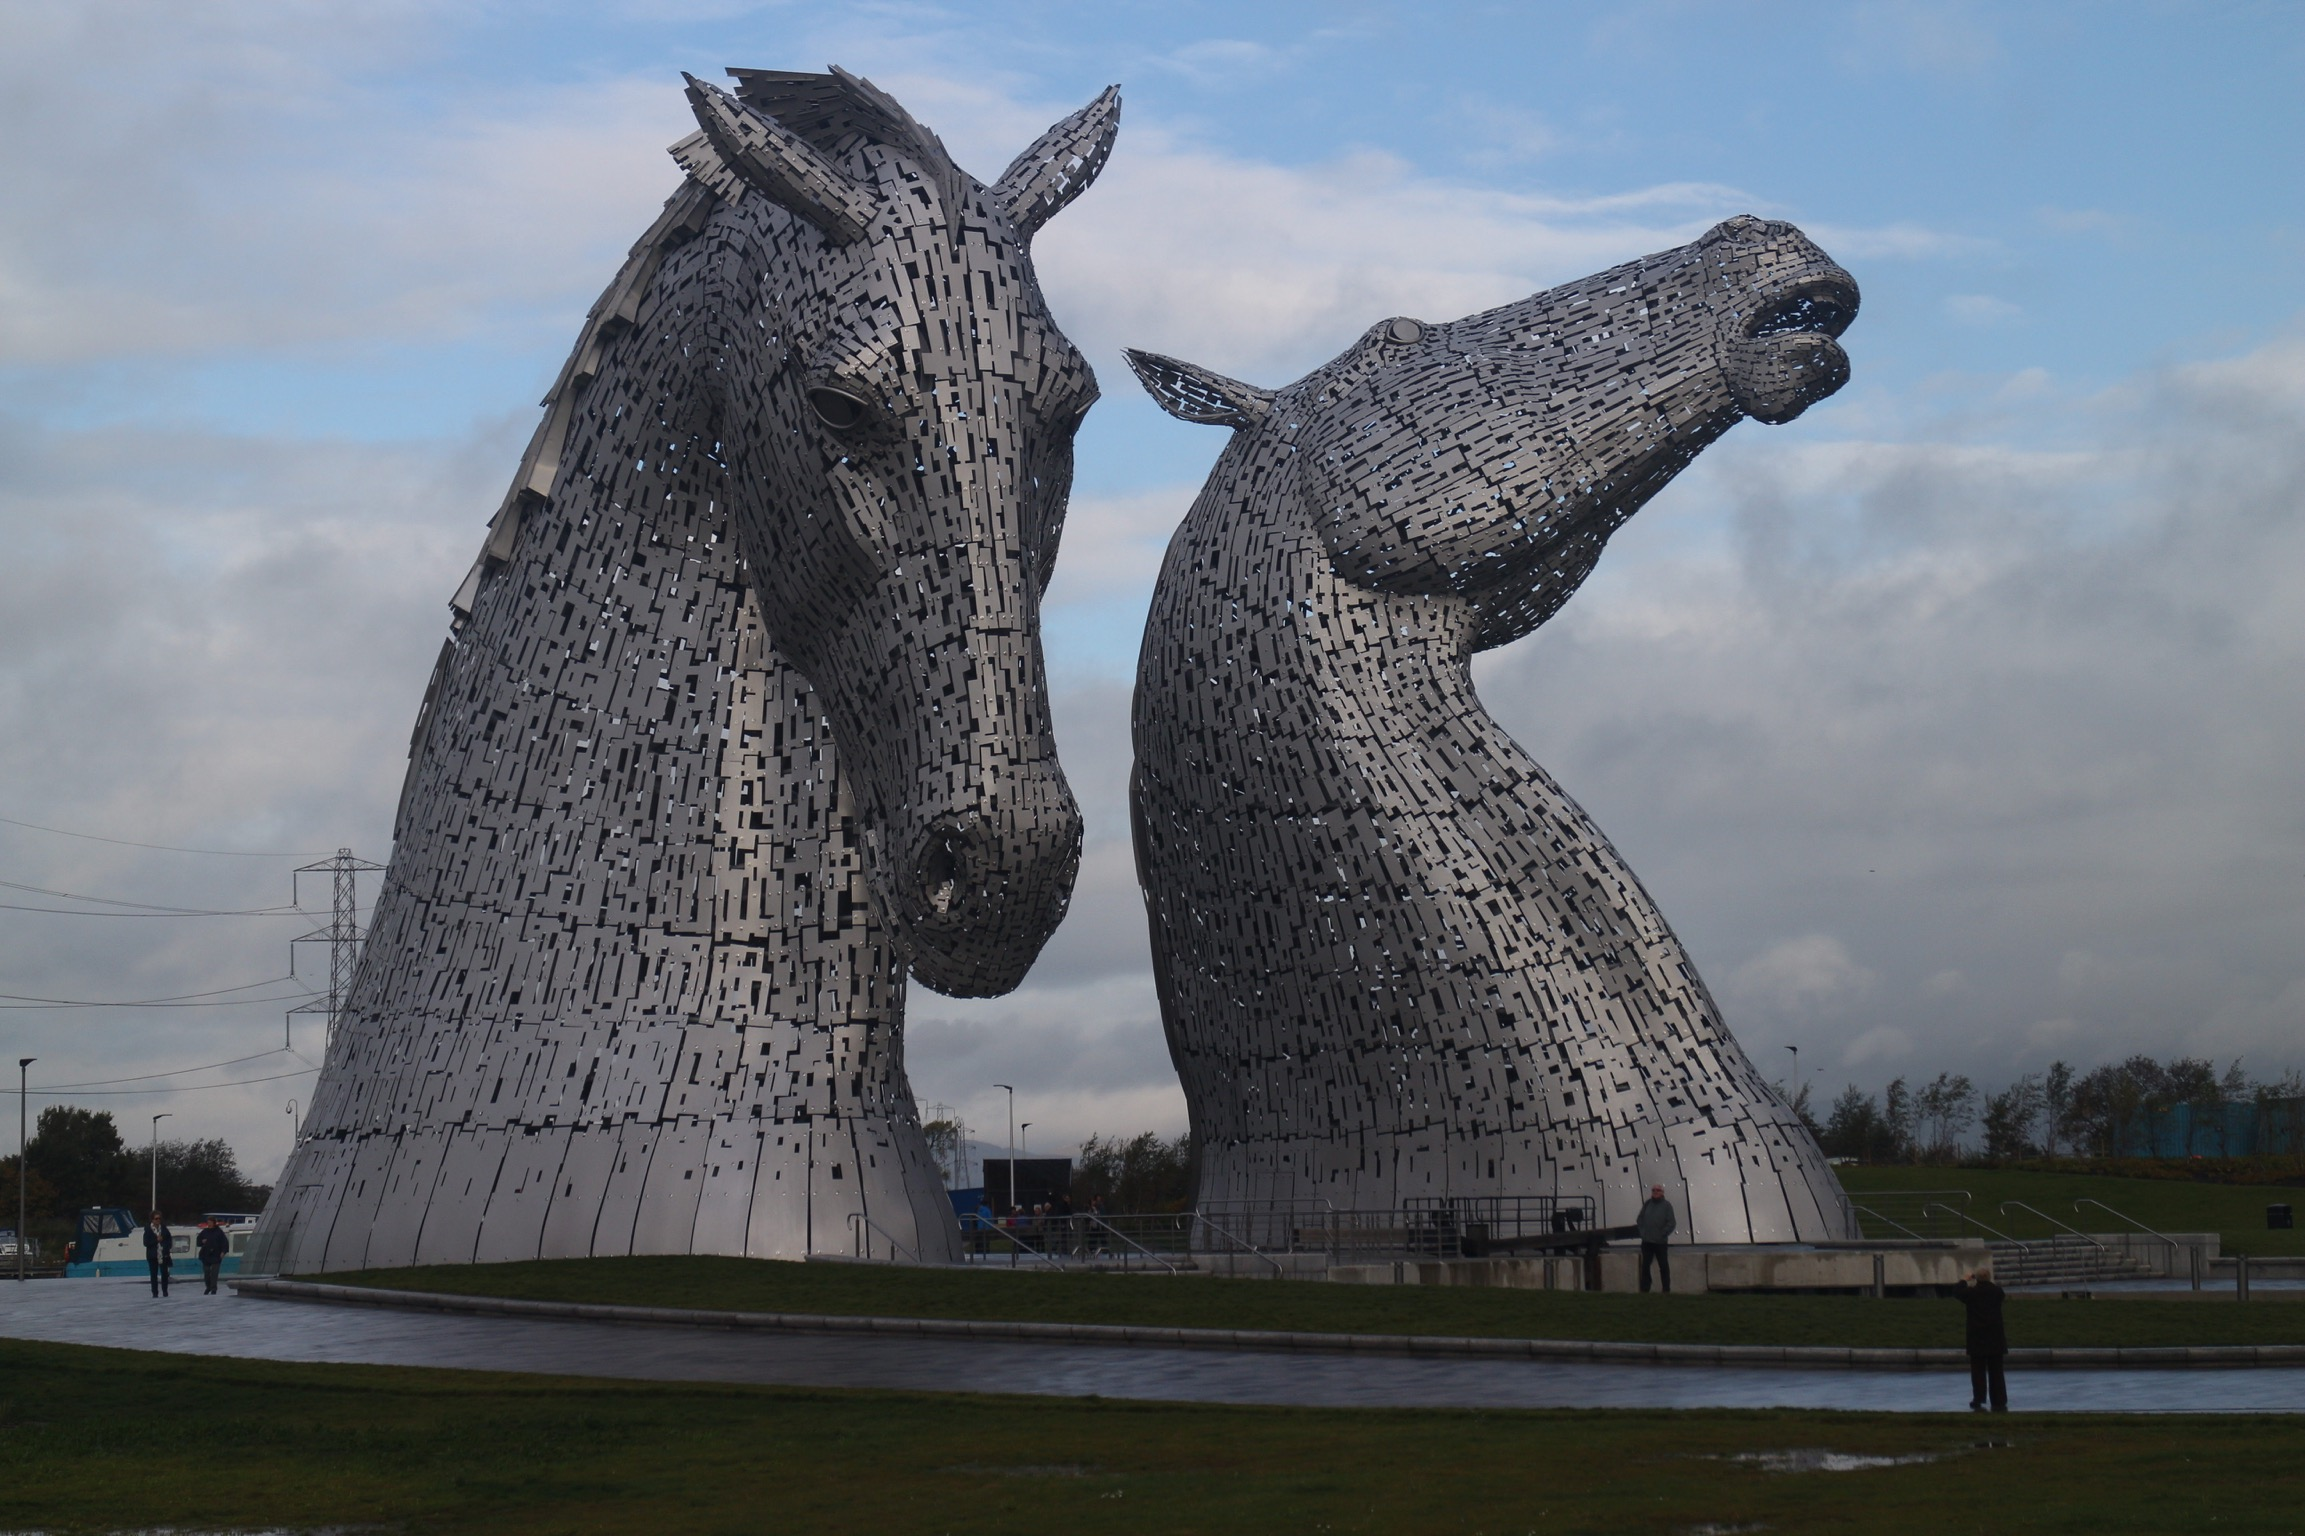 The Kelpies image 2014